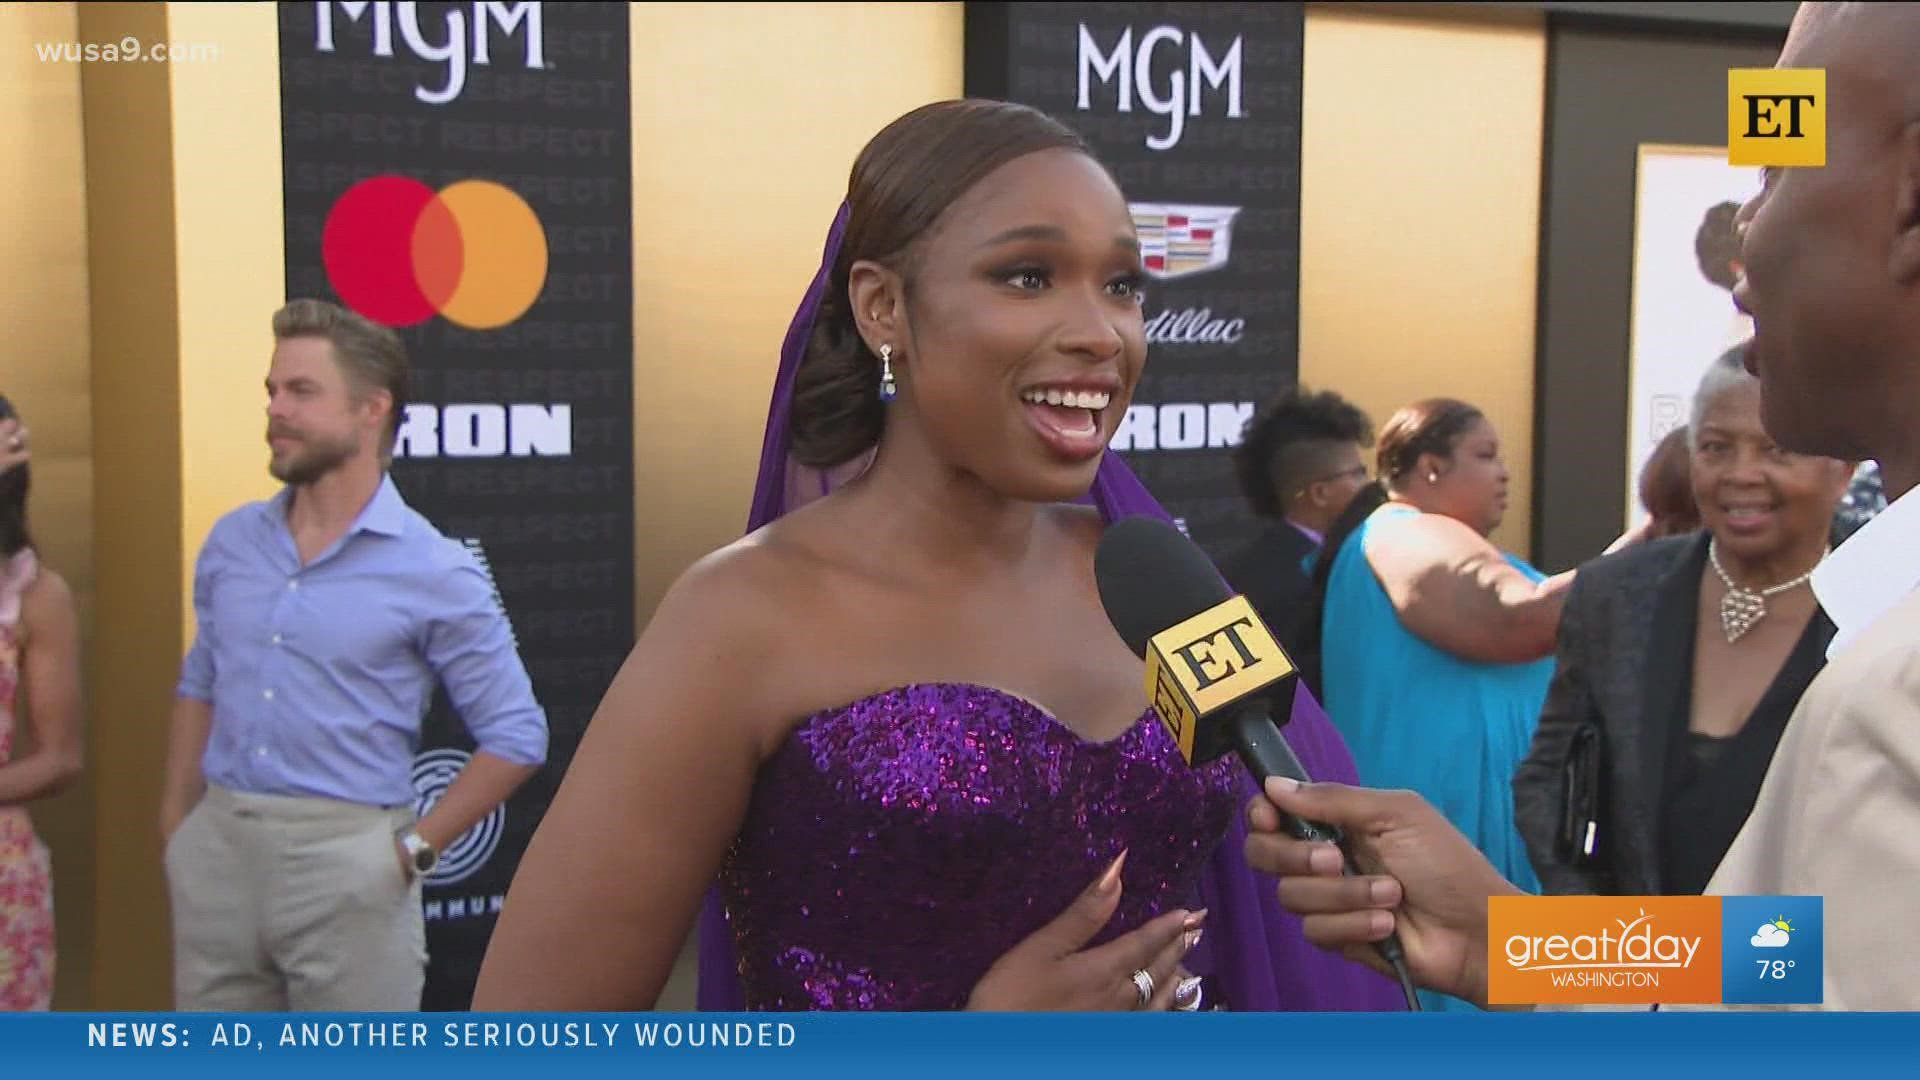 Academy Award winning actress Jennifer Hudson shares her excitement for the new movie